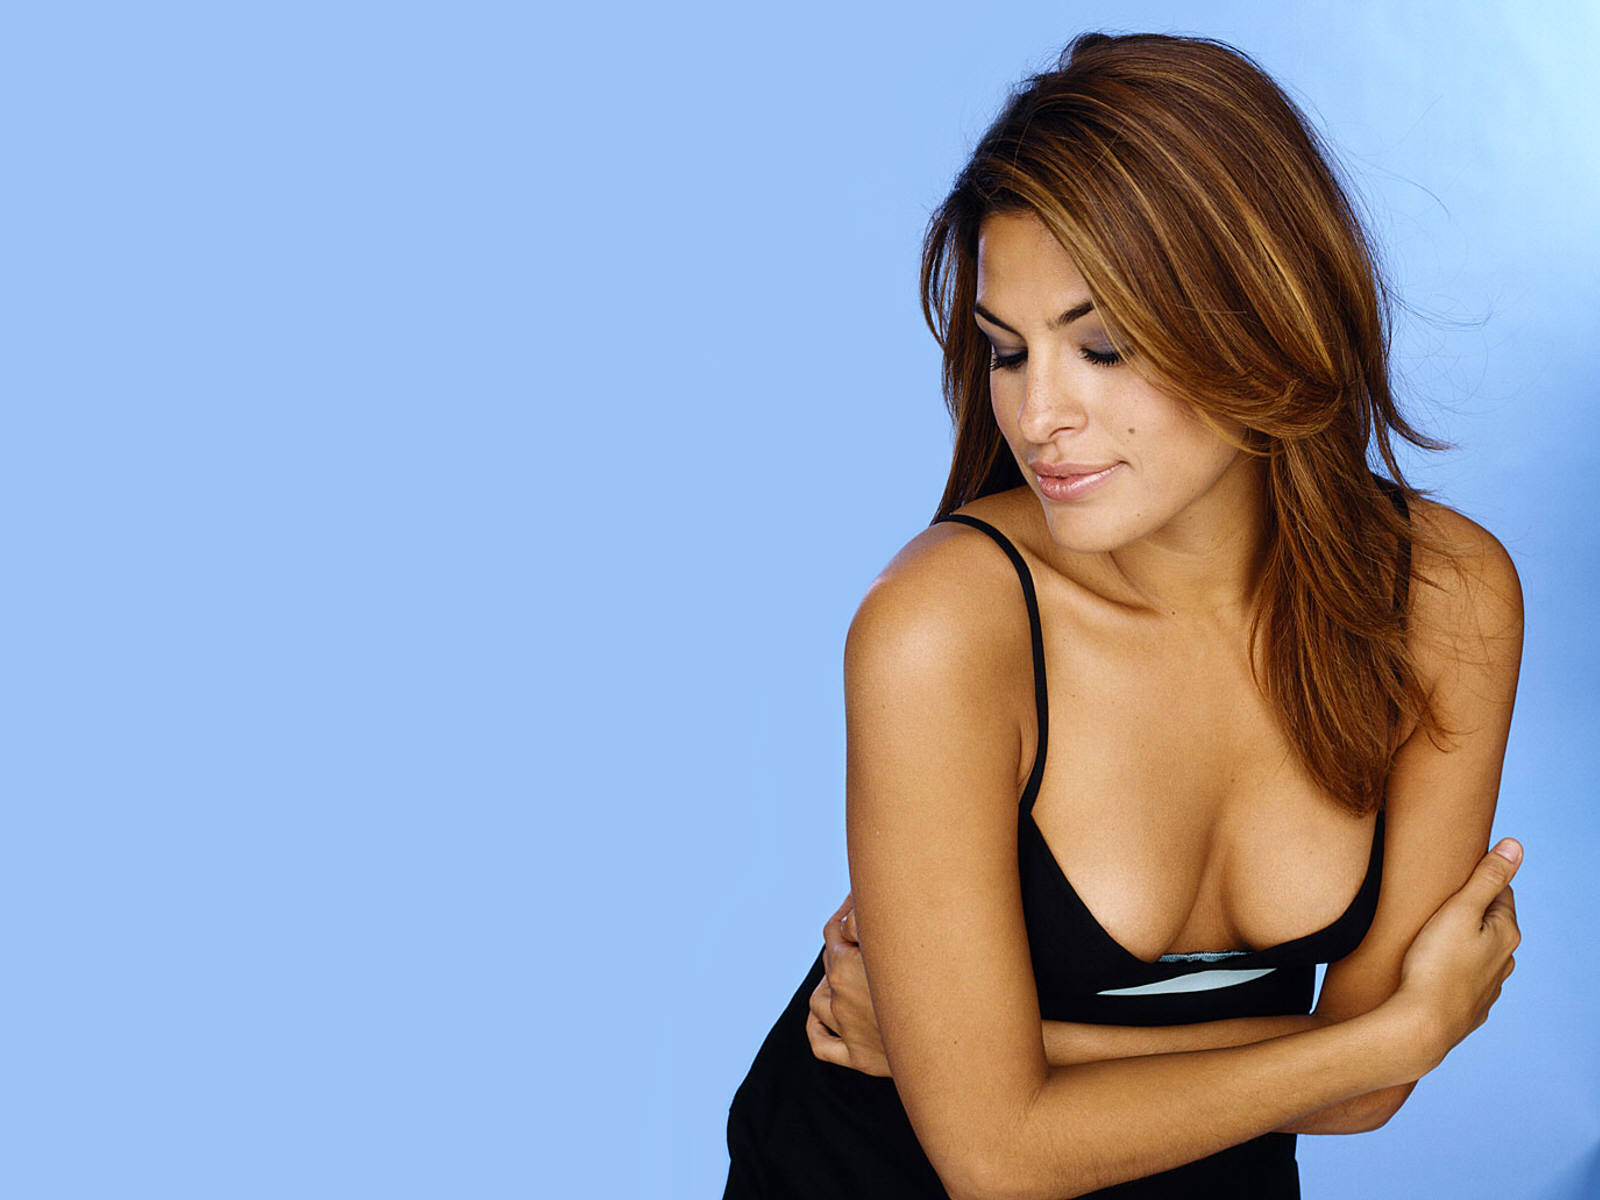 Eva Mendes Hot Unseen Photo Gallery | Babes Around World